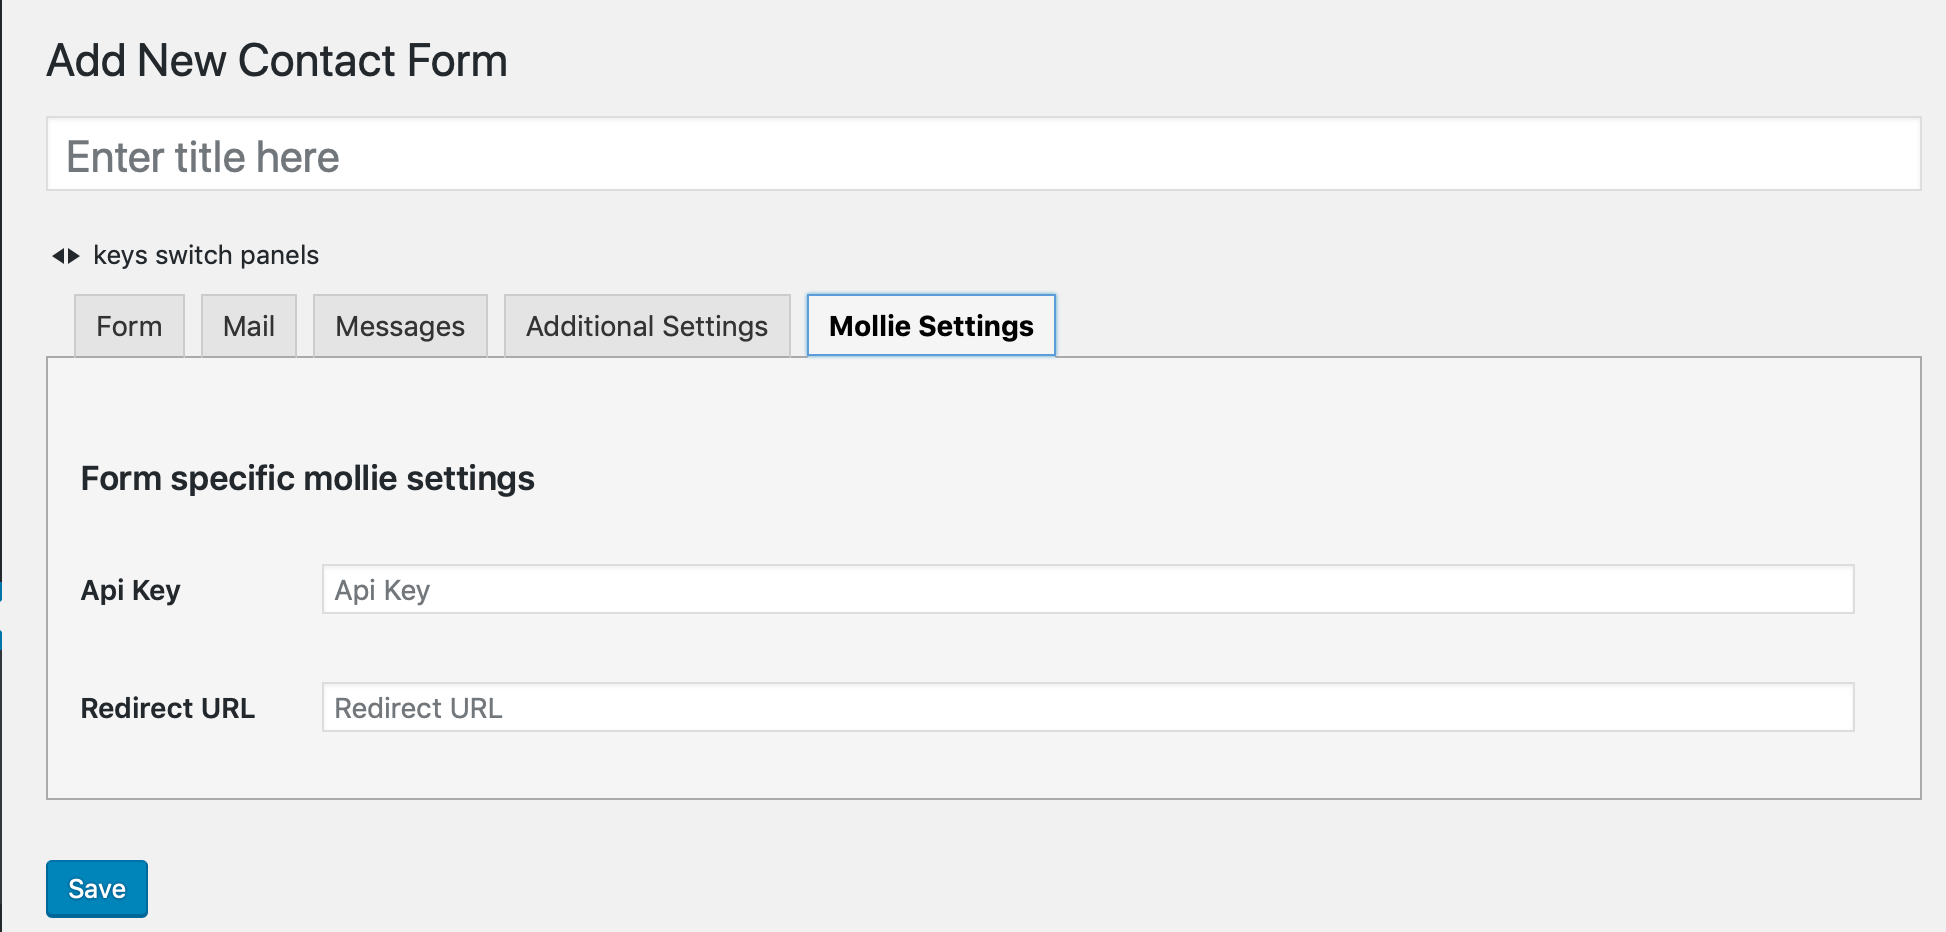 Form specific settings